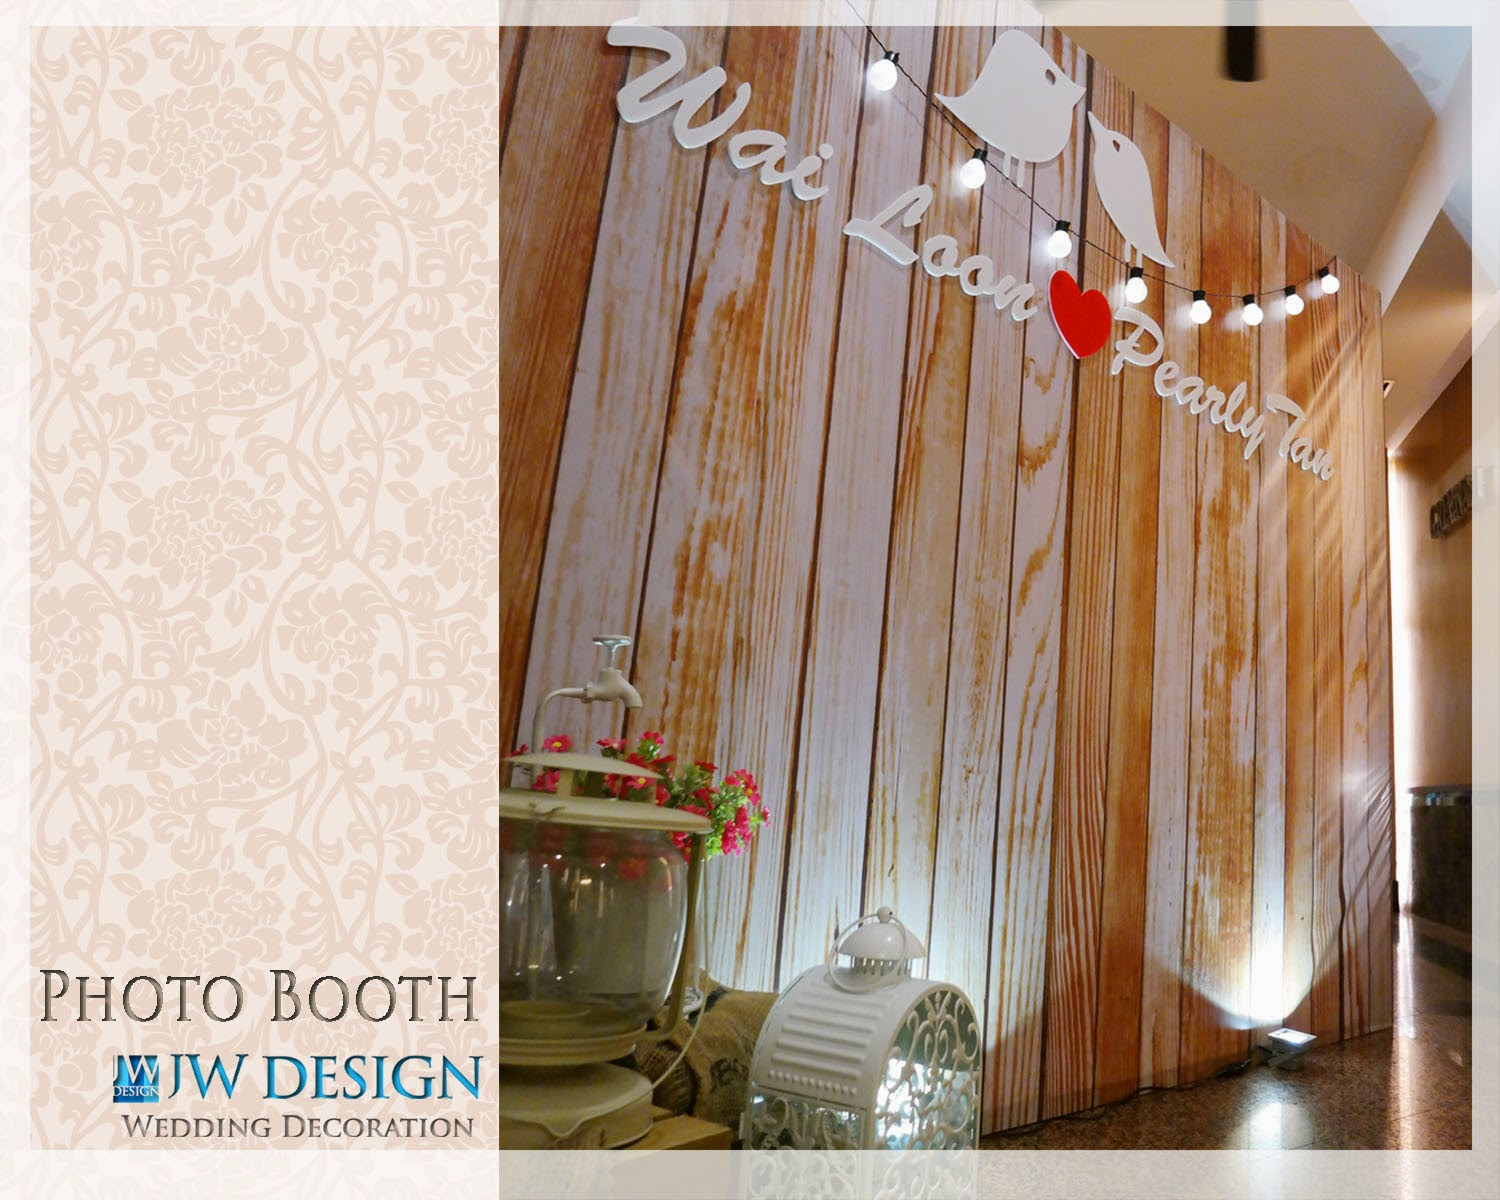 jw design wedding decoration wai loon amp pearlys wedding